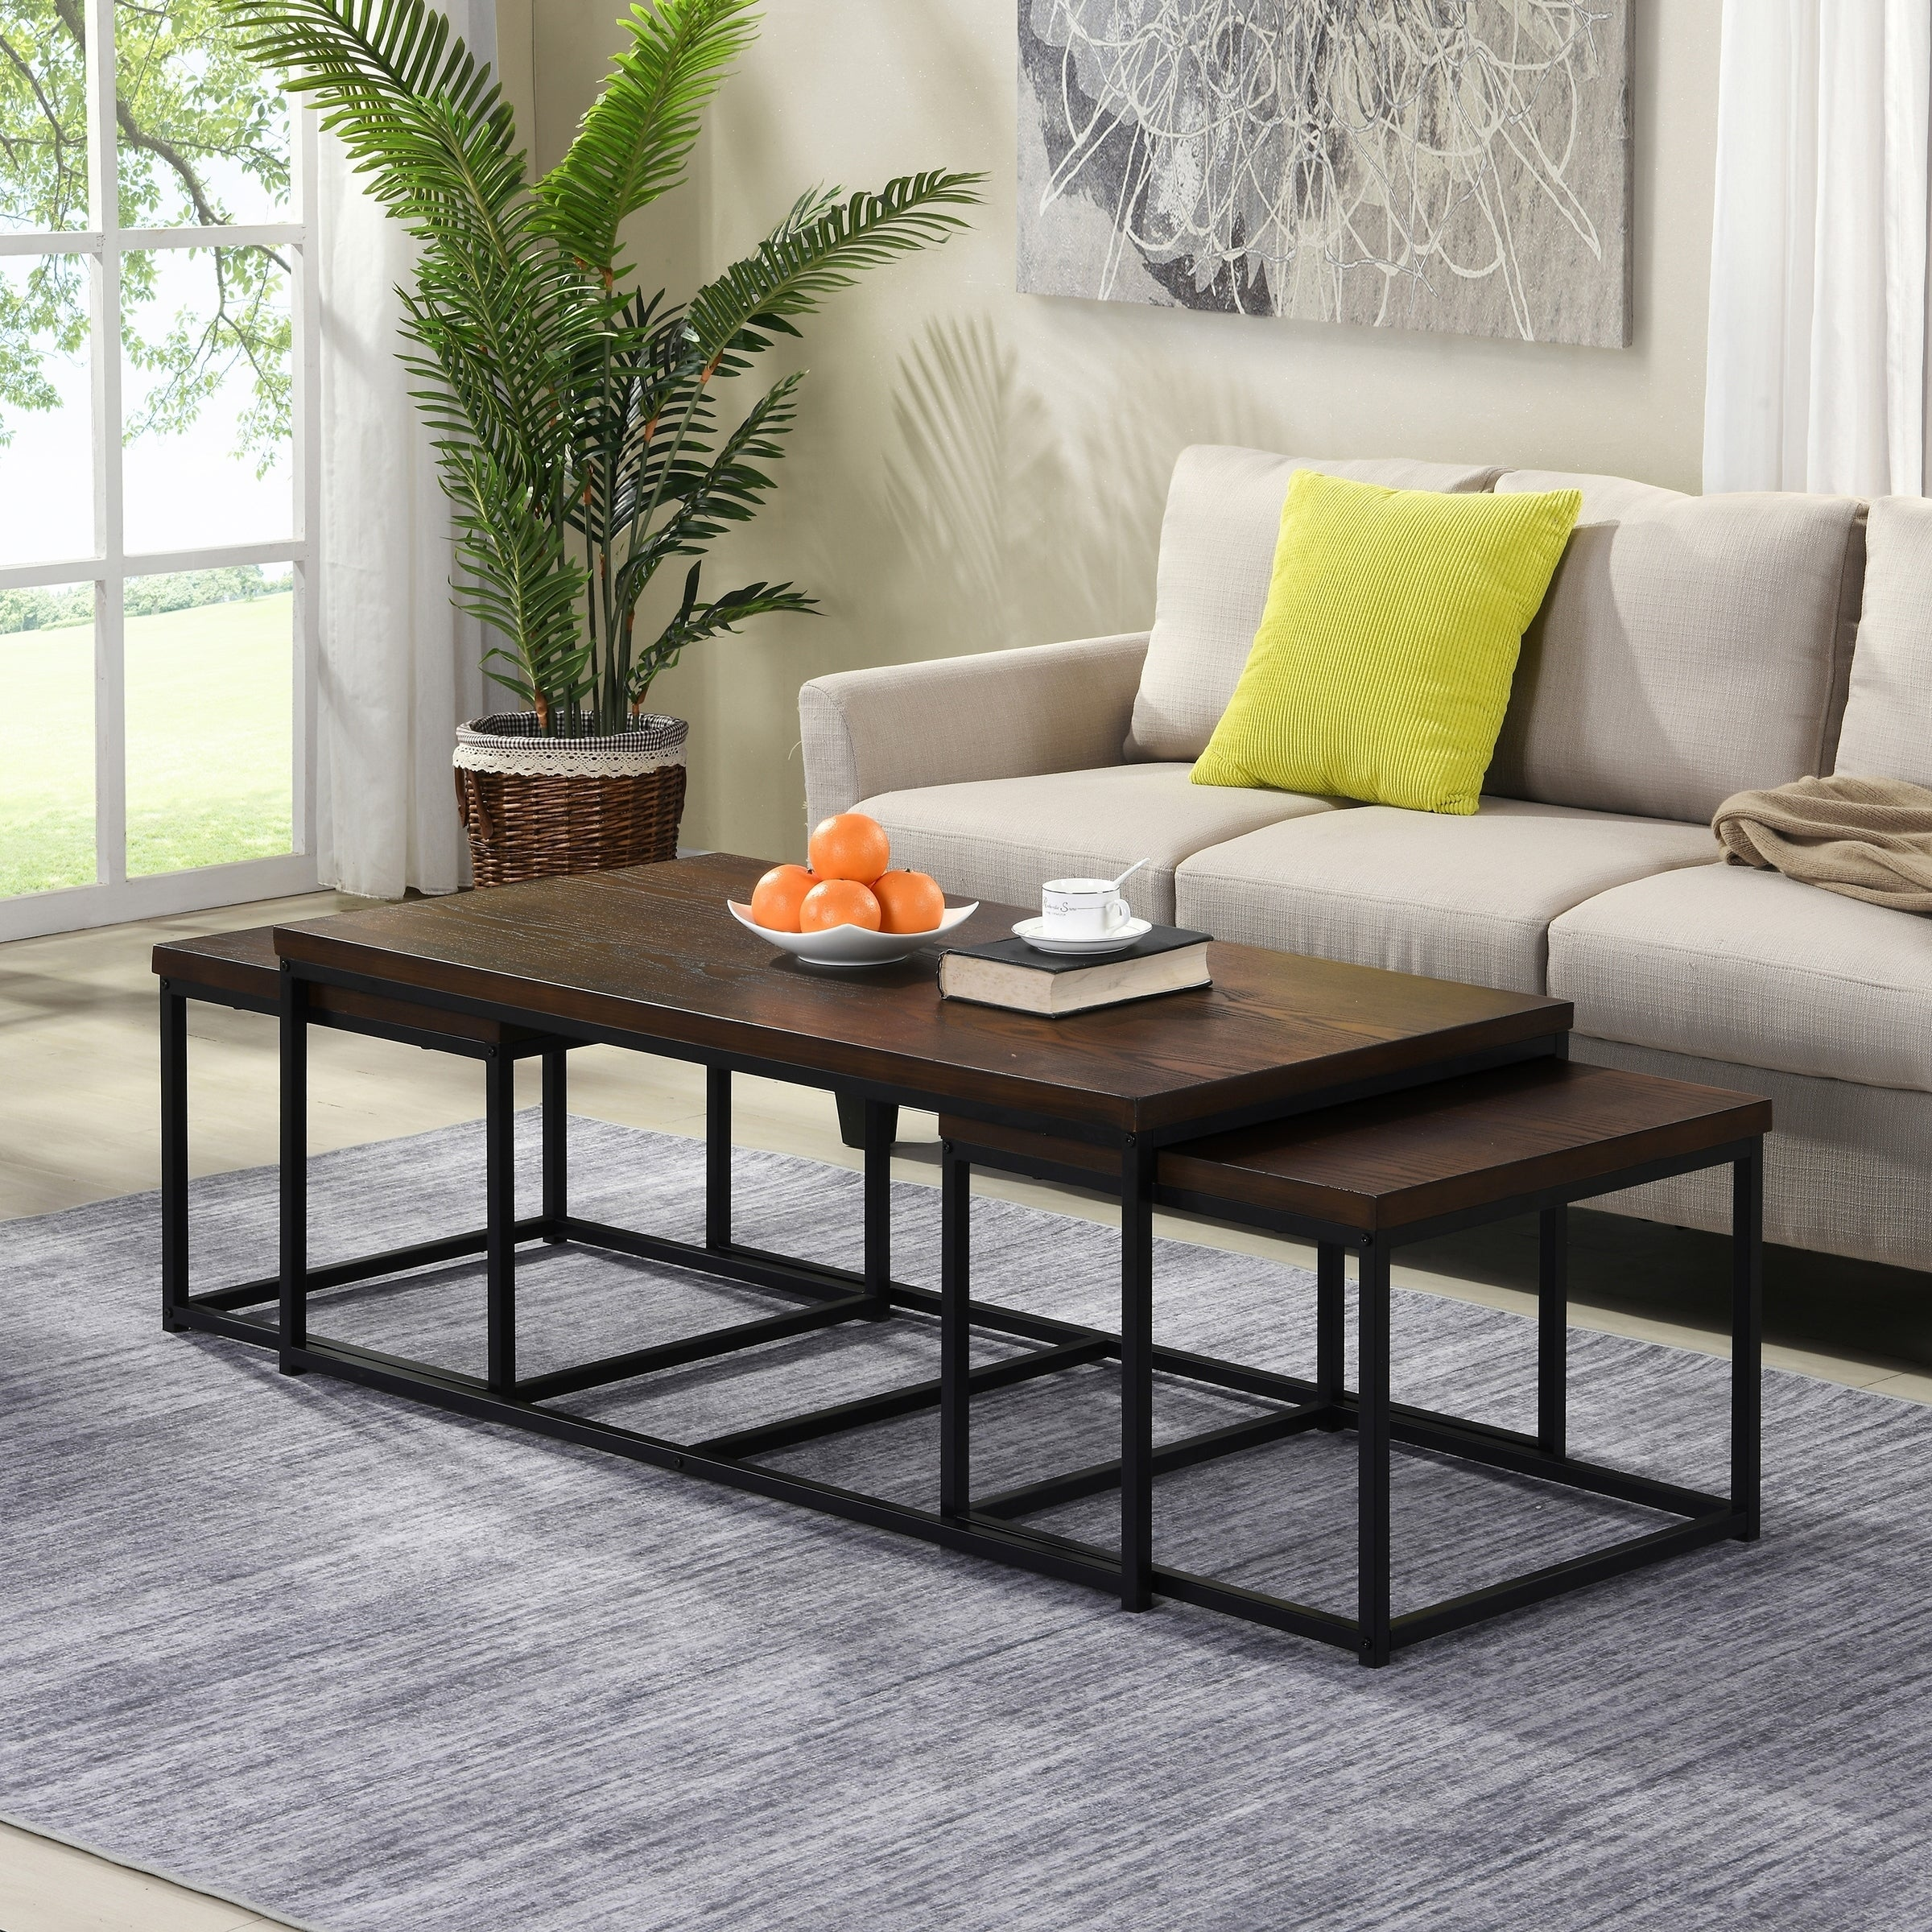 Shop For Carbon Loft Demchak Black 3 Piece Coffee Table And Side Table Set Get Free Shipping On Everything At Overstock Your Online Furniture Outlet Store Get 5 In Rewards With Club O 30542987